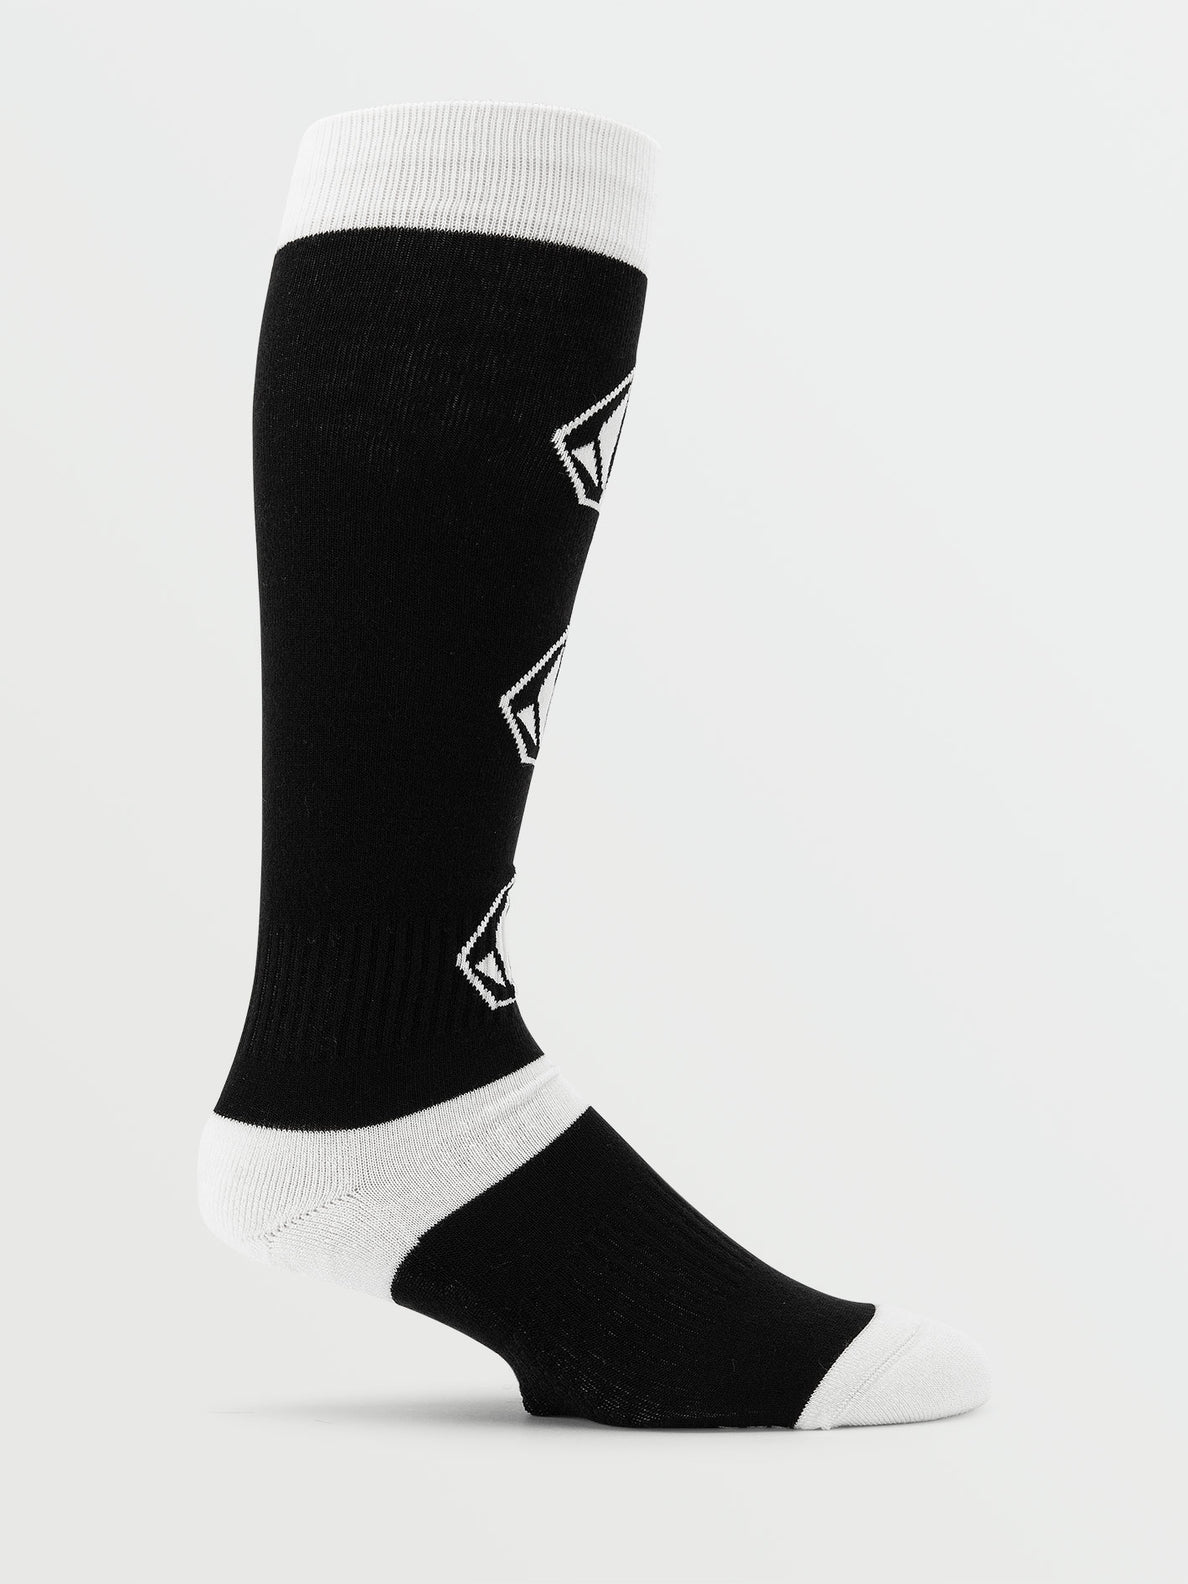 LODGE SOCK - BLACK (J6352102_BLK) [B]